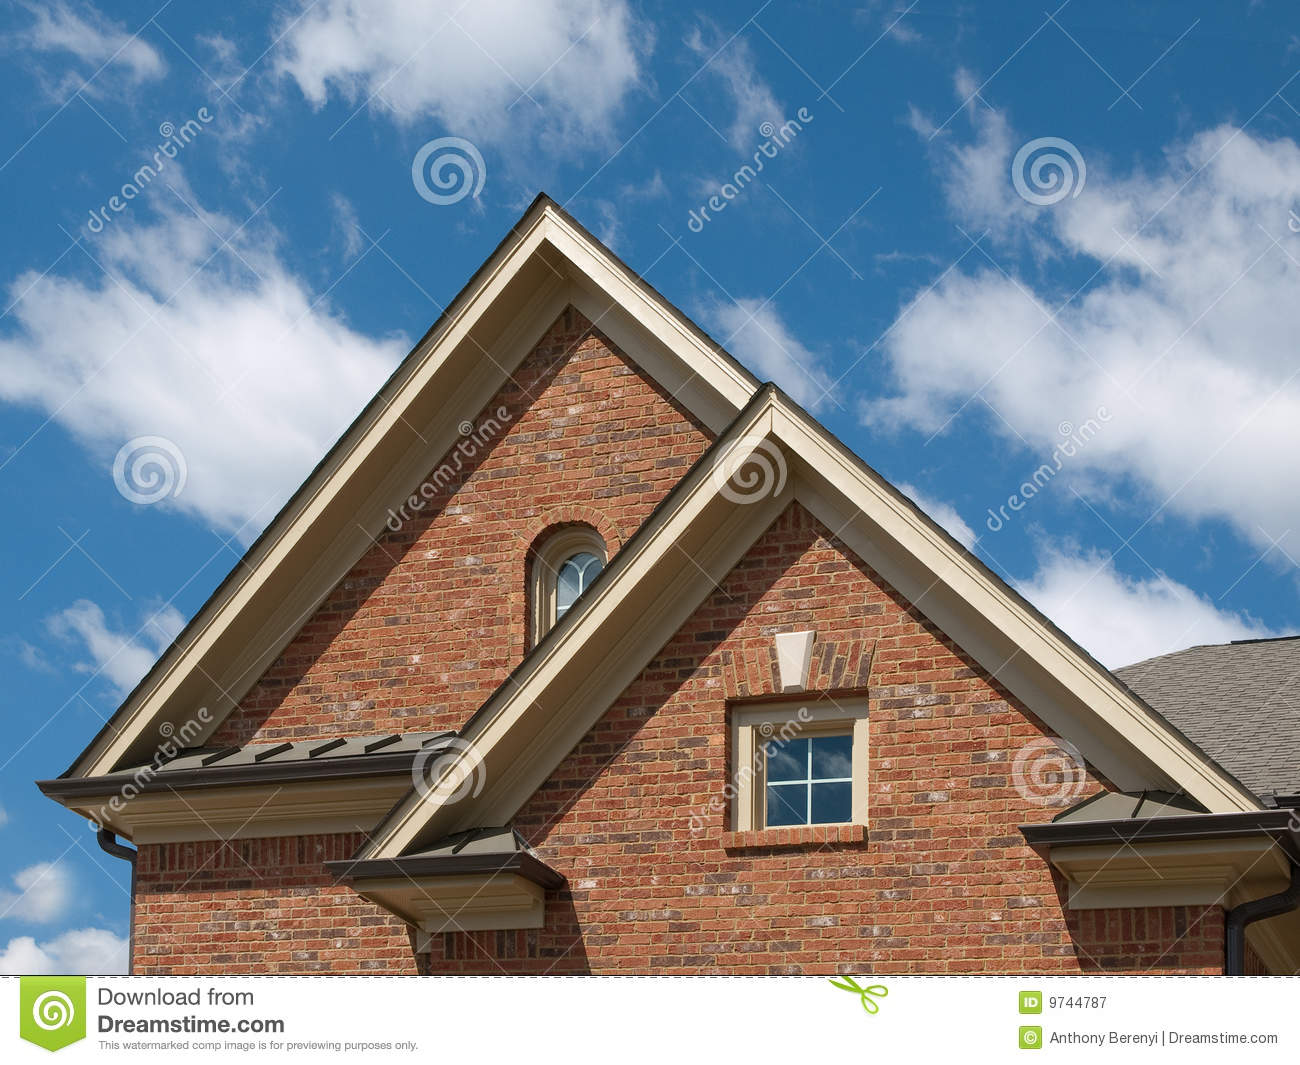 Luxury model home exterior pitch roof window royalty free for Model home exterior photos